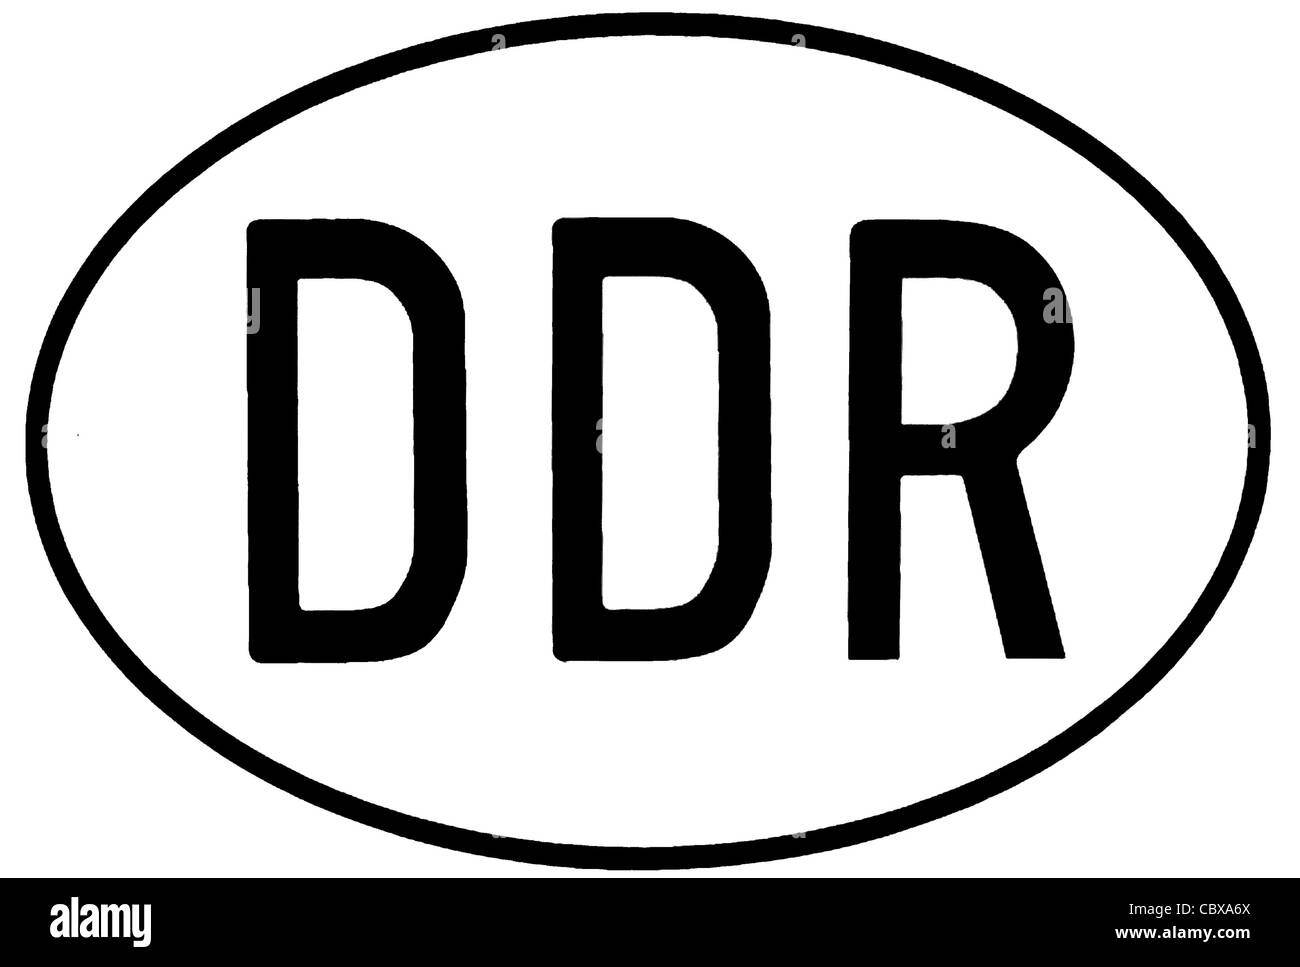 Country characteristic of the GDR for motor vehicles. - Stock Image